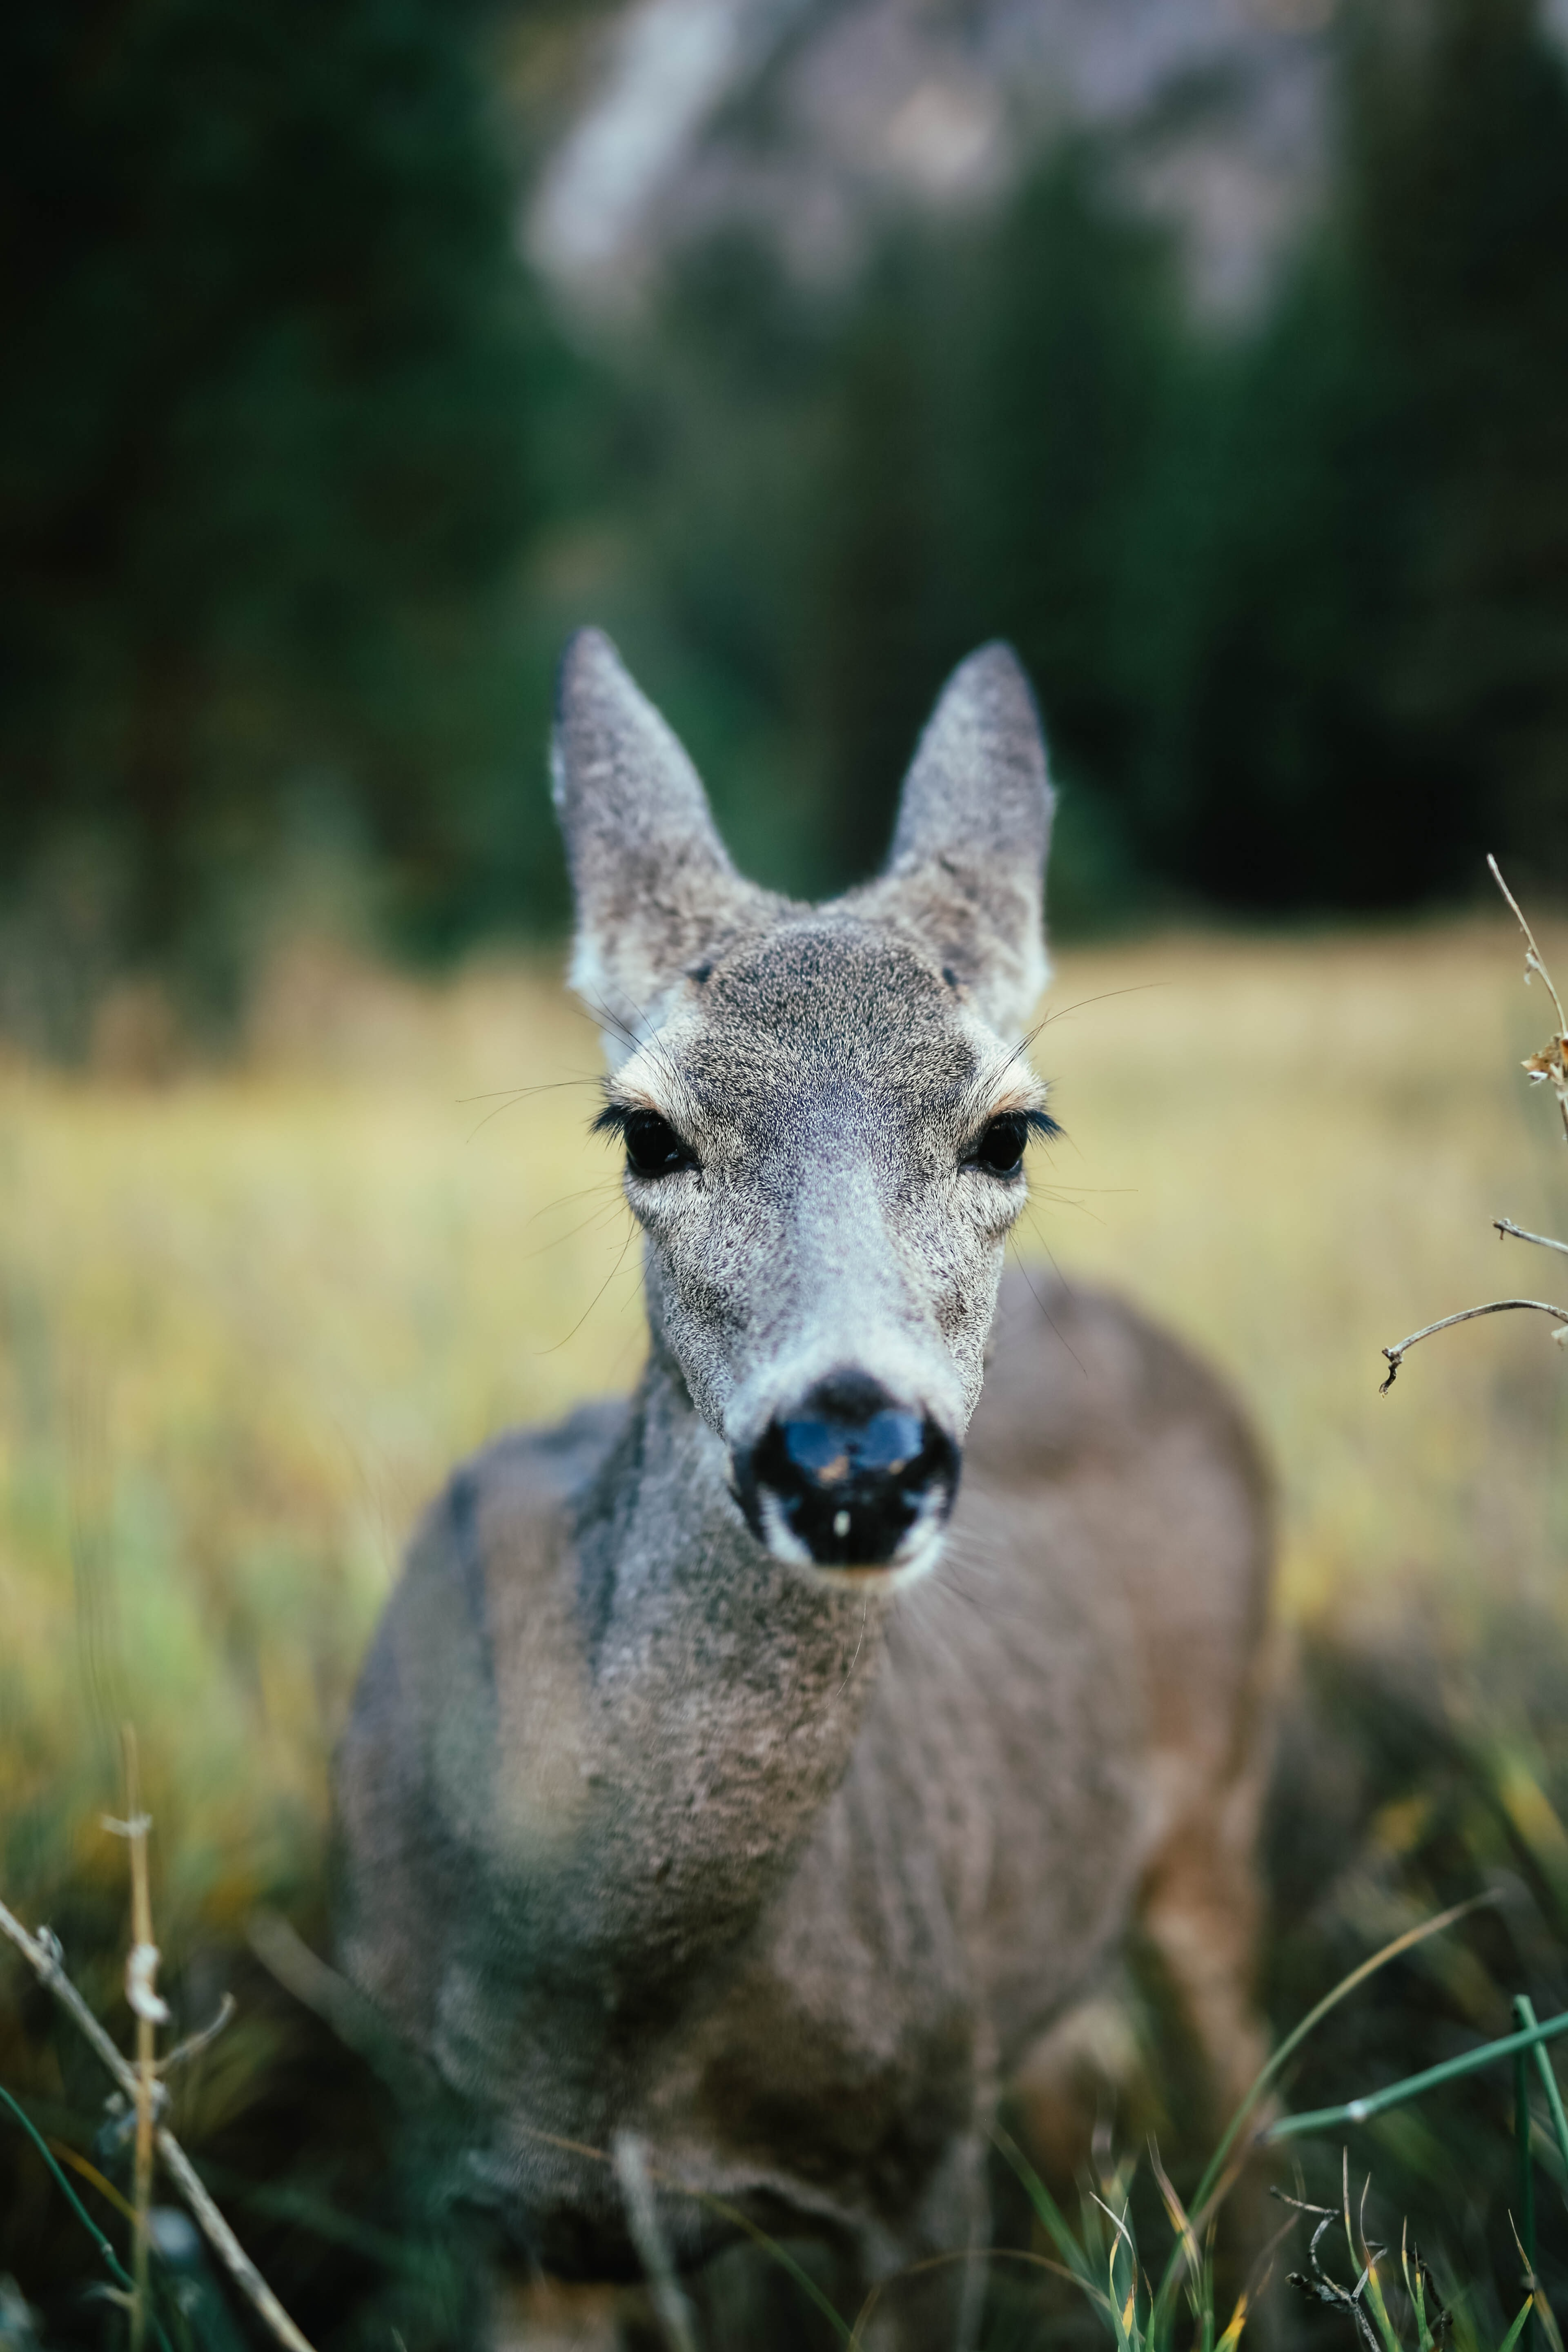 gray deer standing on grassland during daytime selective focus photography